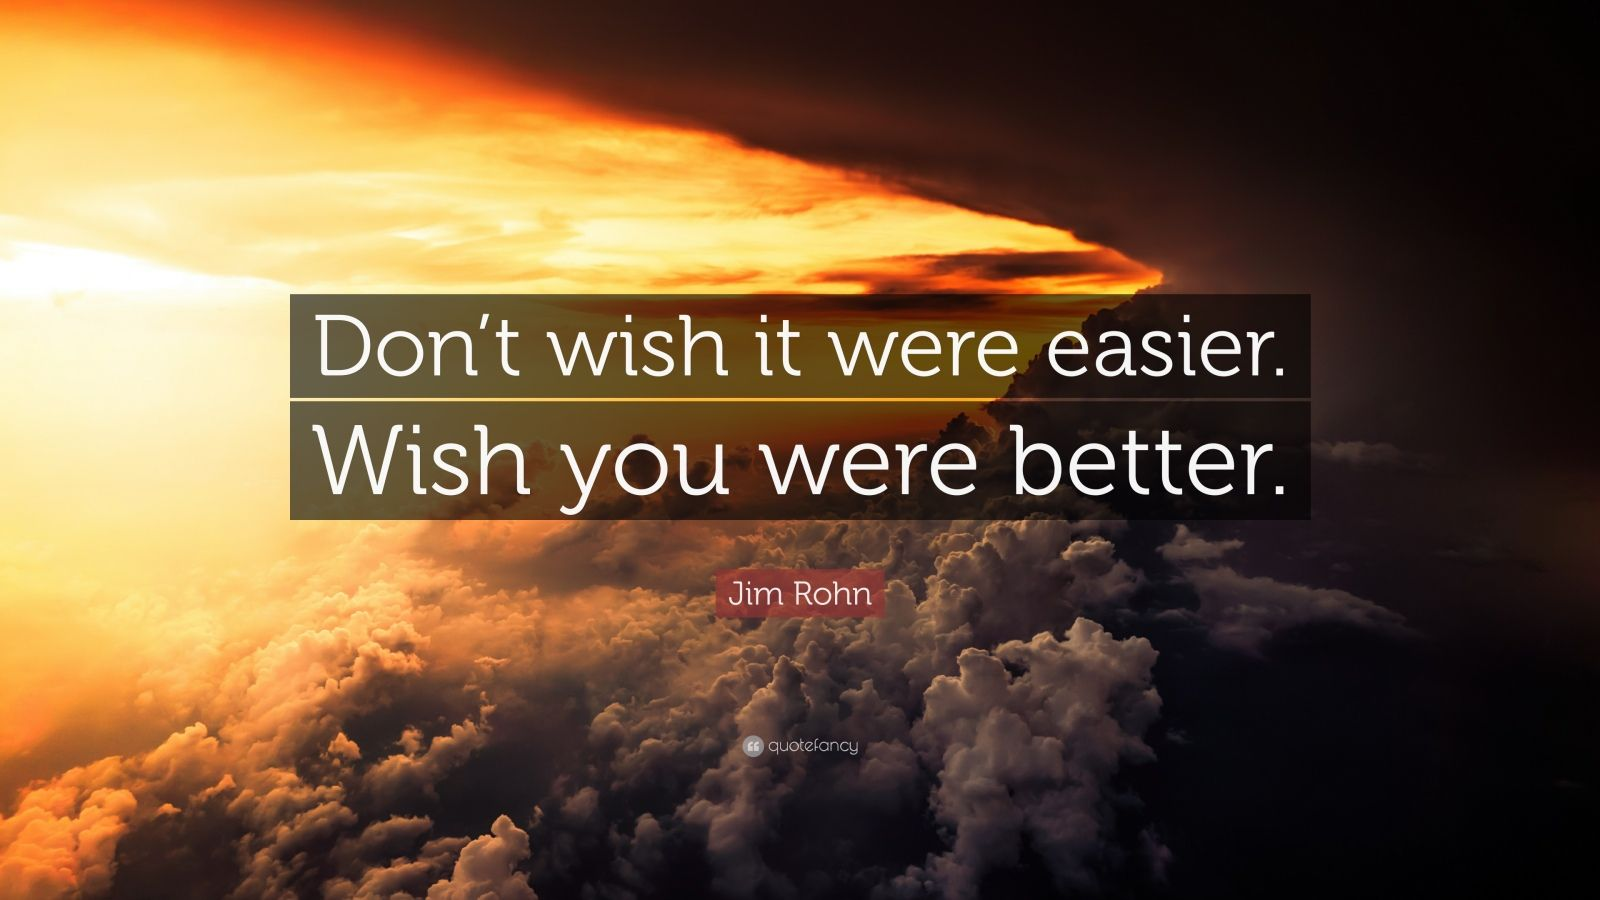 Startup Quotes Wallpaper Jim Rohn Quote Don T Wish It Were Easier Wish You Were